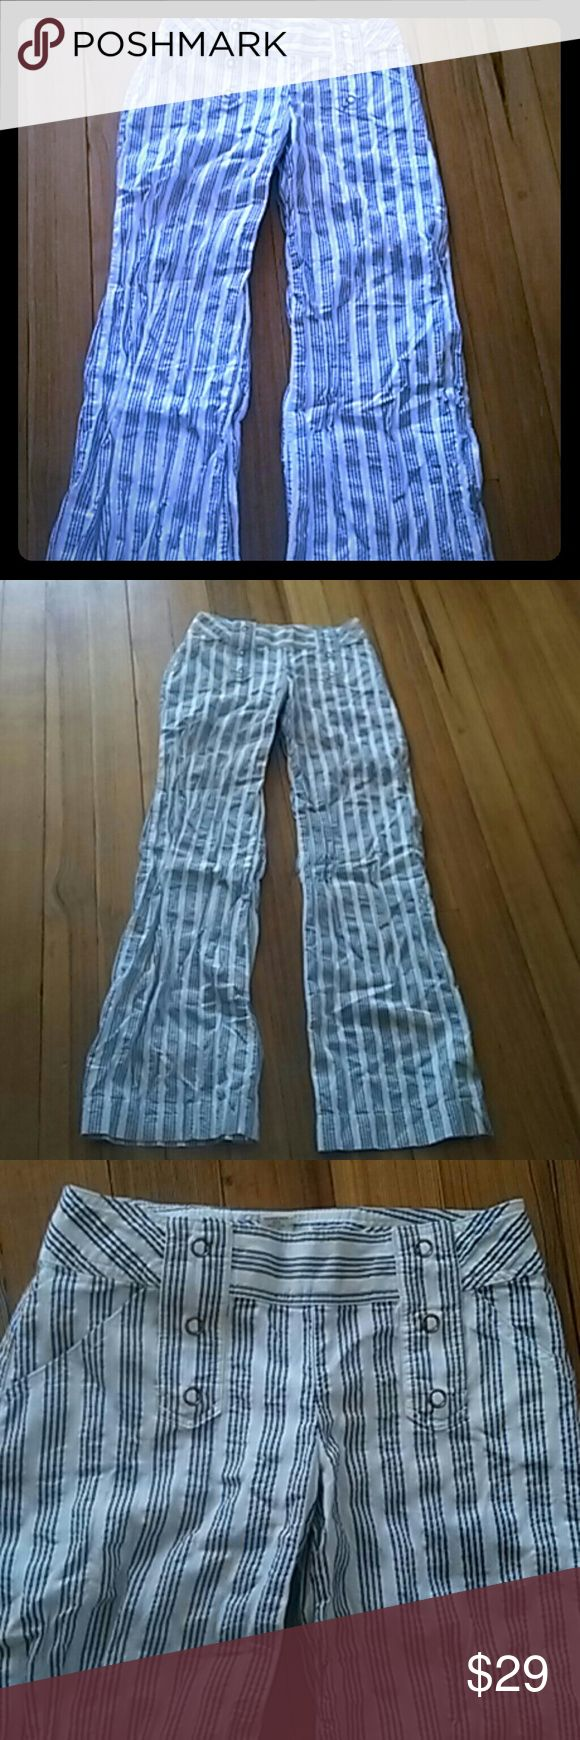 New Victoria's Secret Brand New London jeans These are brand new beautiful navy blue an off-white Victoria's Secret pants never worn been sitting in my drawer they are adorable especially for the spring and summer time they are size two London Jean.  Victoria's Secret Pants